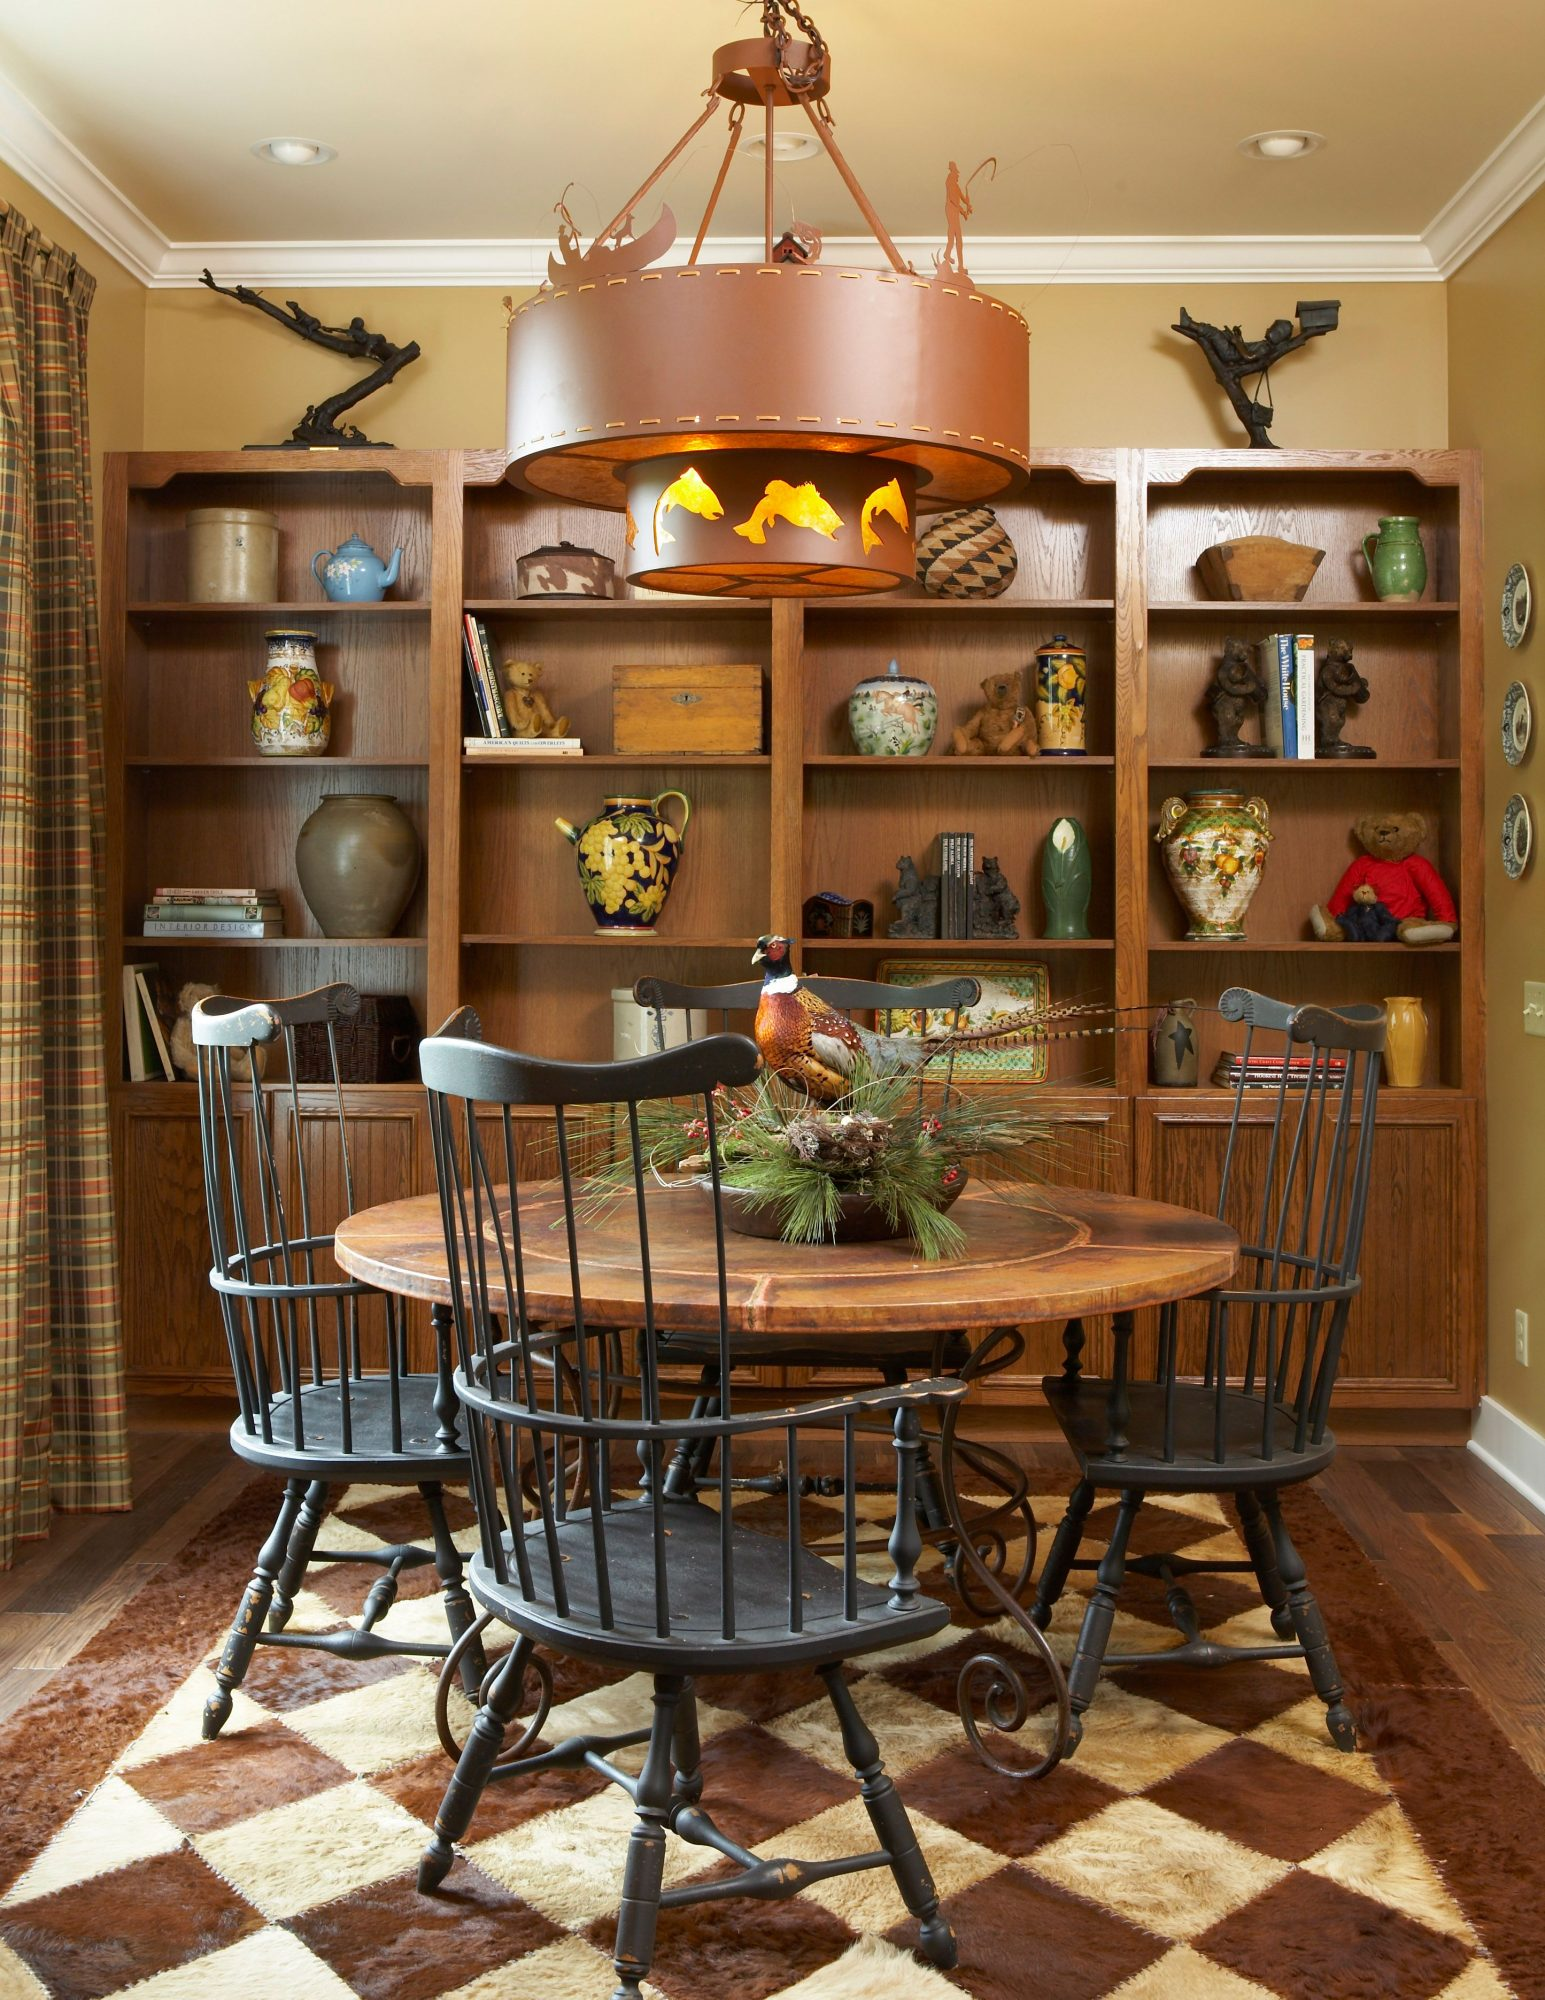 Dining Room With Library Shelves